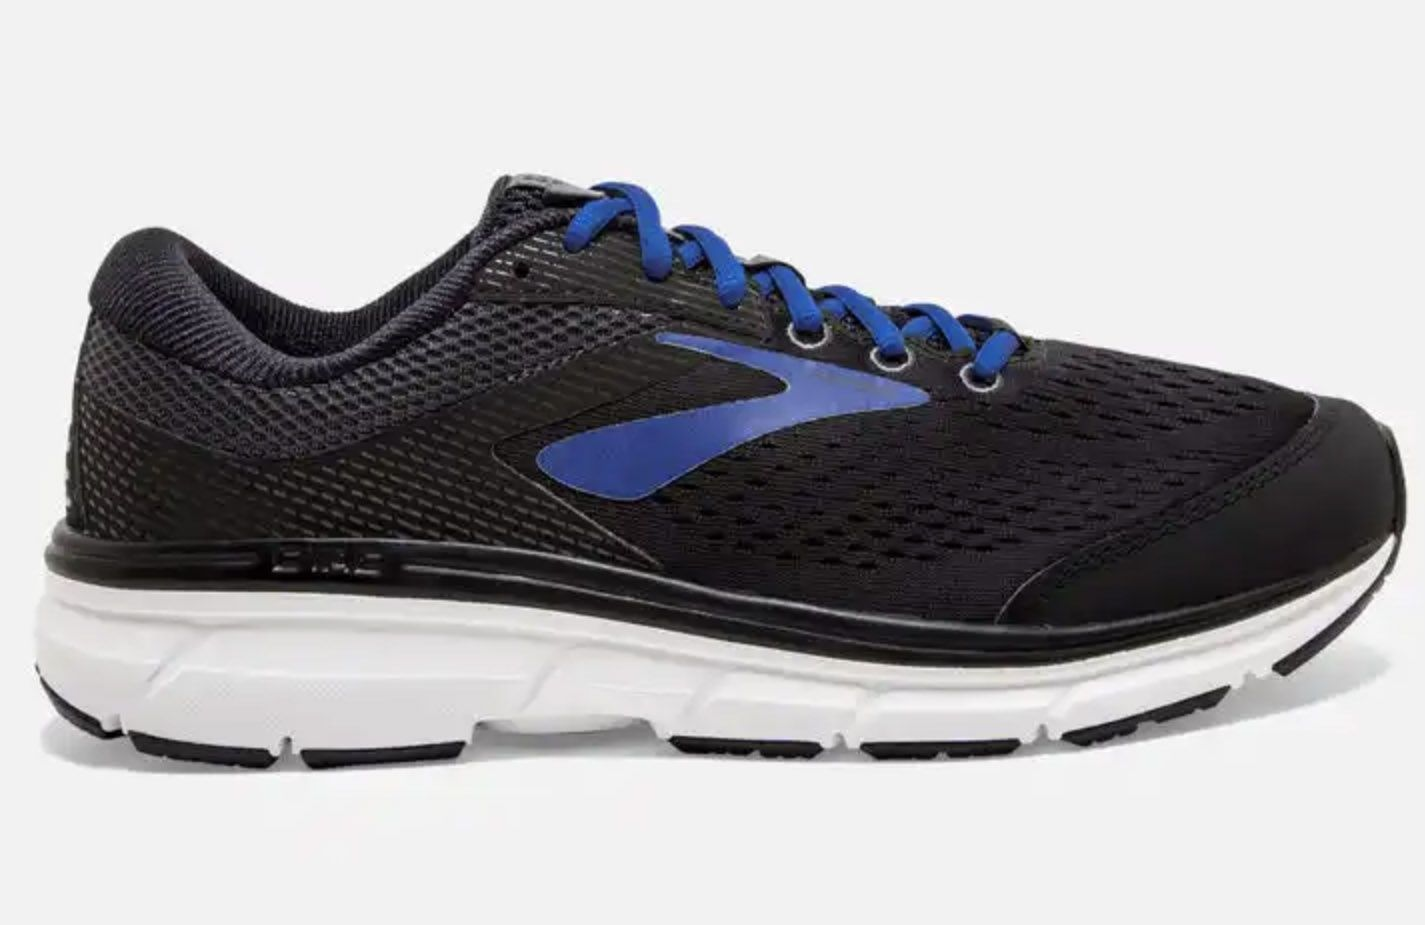 best mizuno running shoes for flat feet reviews